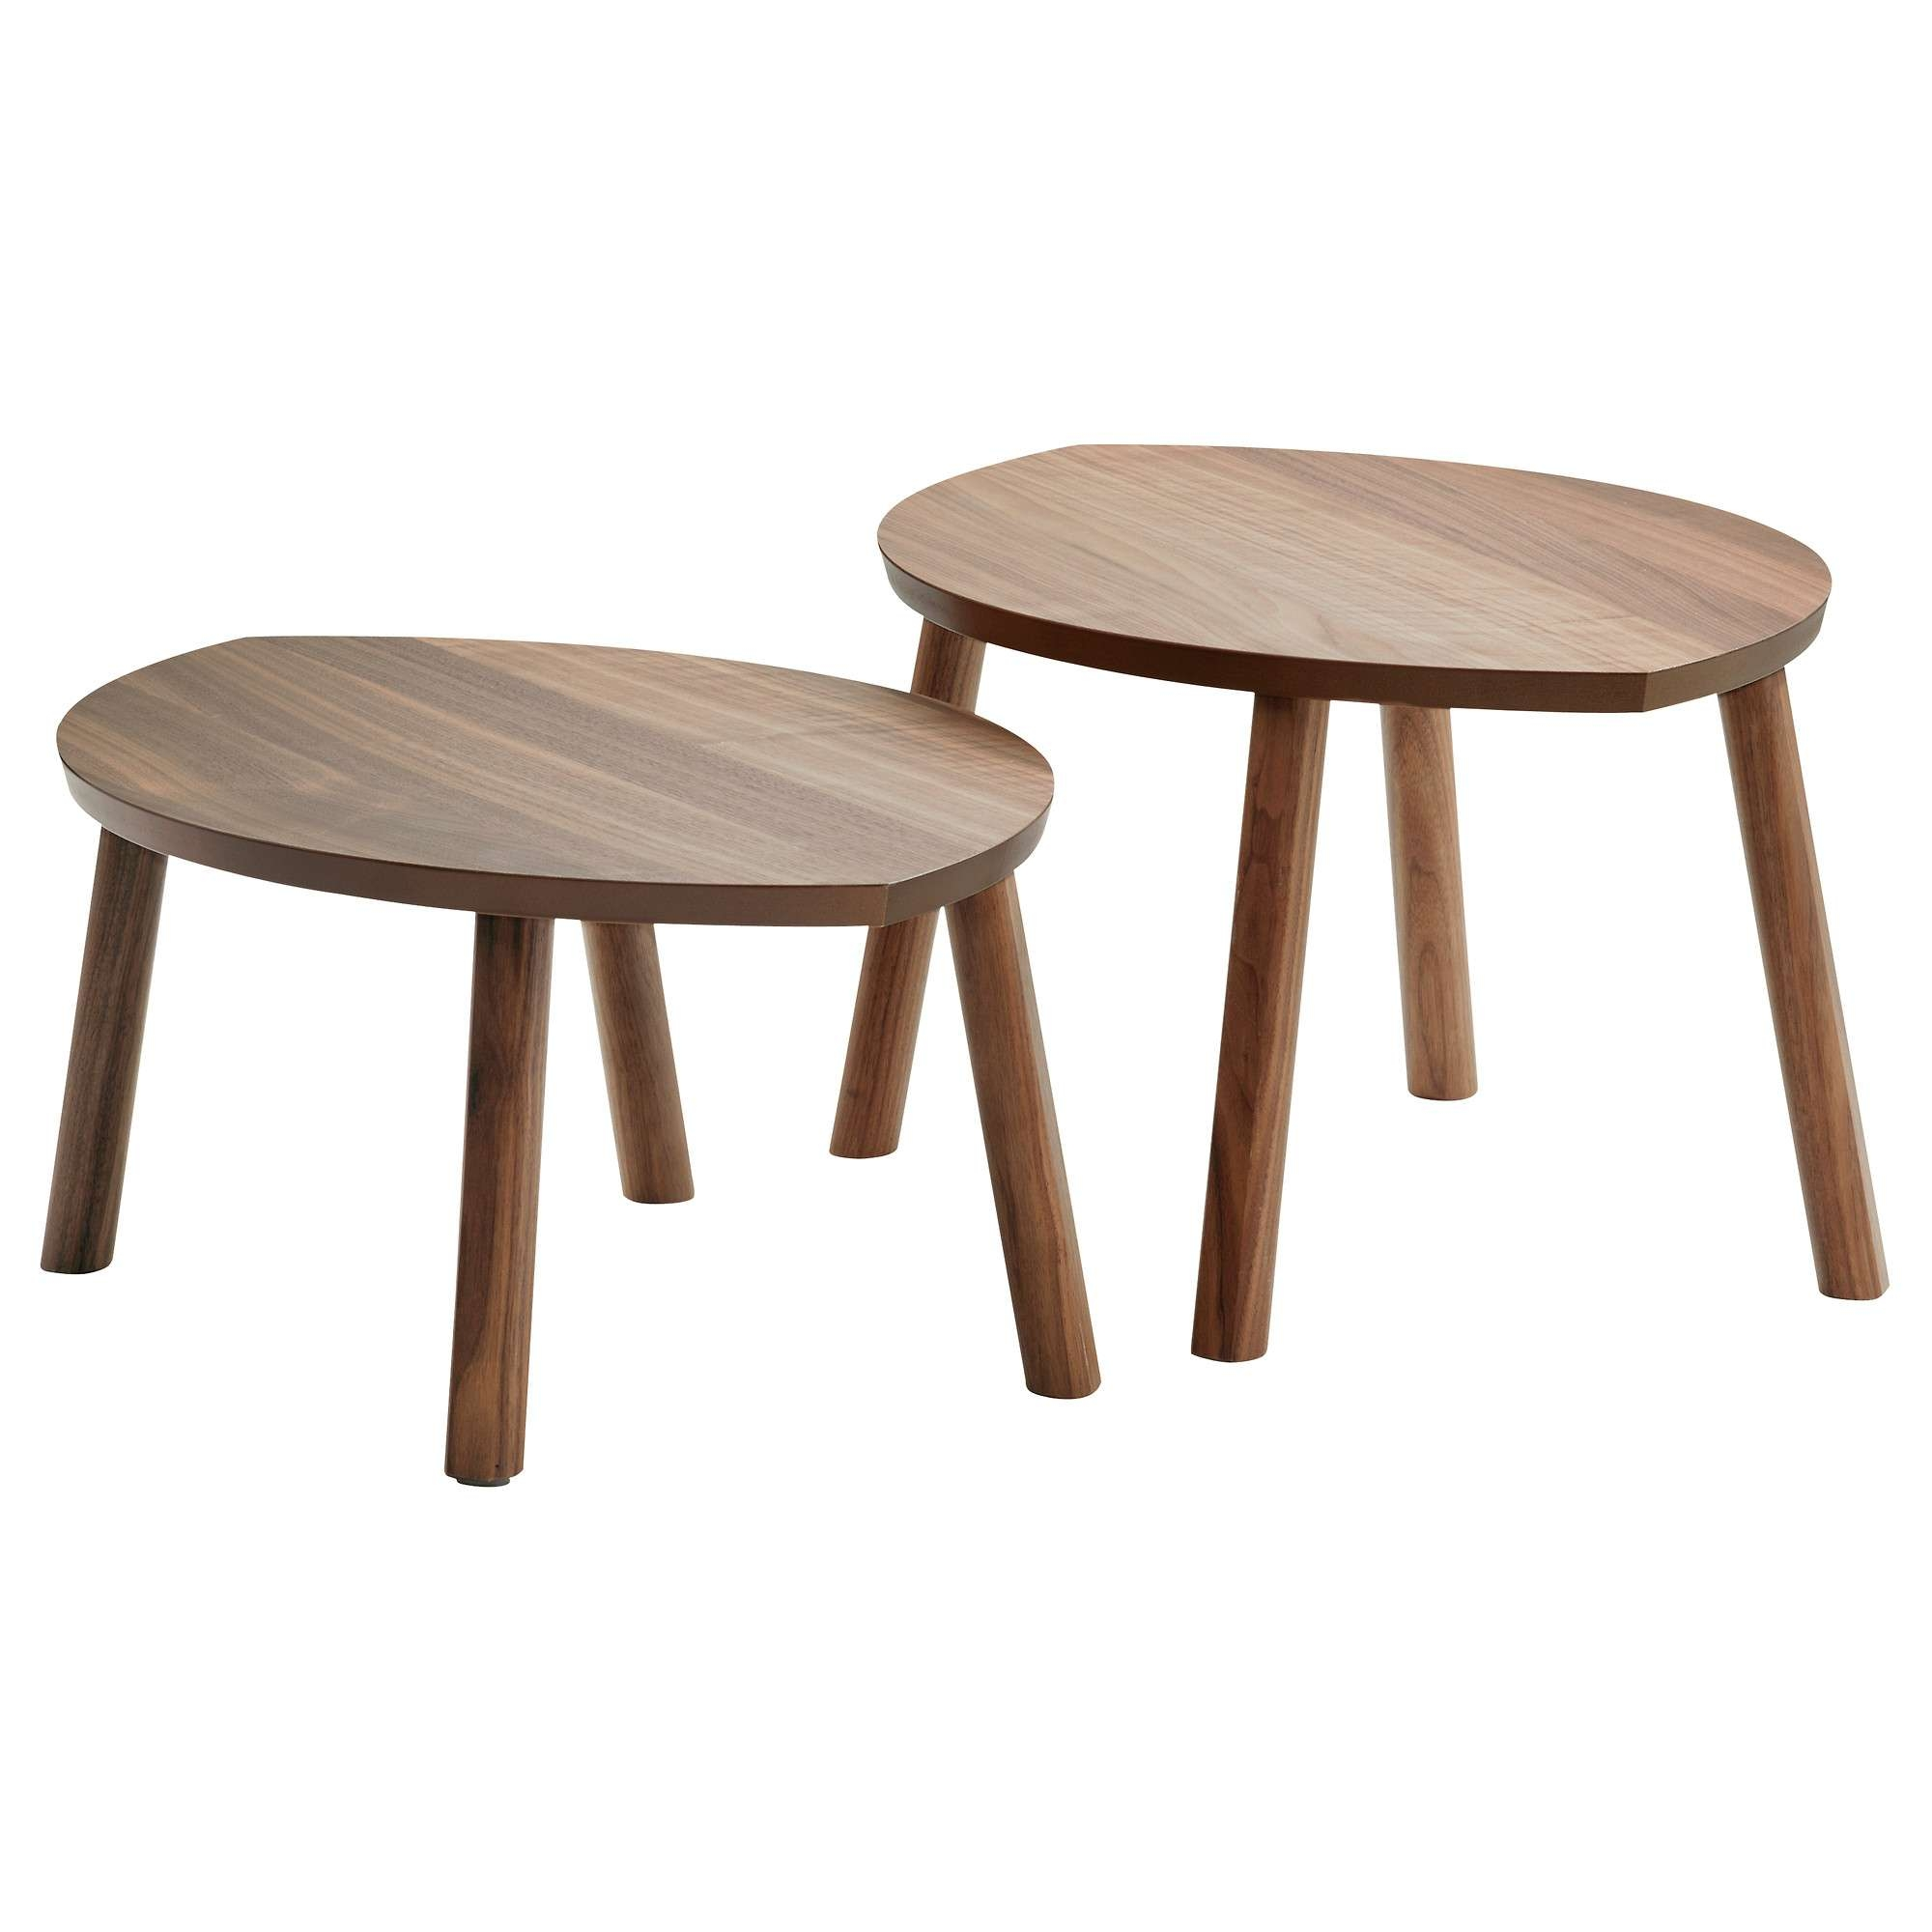 2017 Nest Coffee Tables Within Stockholm Nesting Tables, Set Of 2 – Ikea (View 13 of 20)